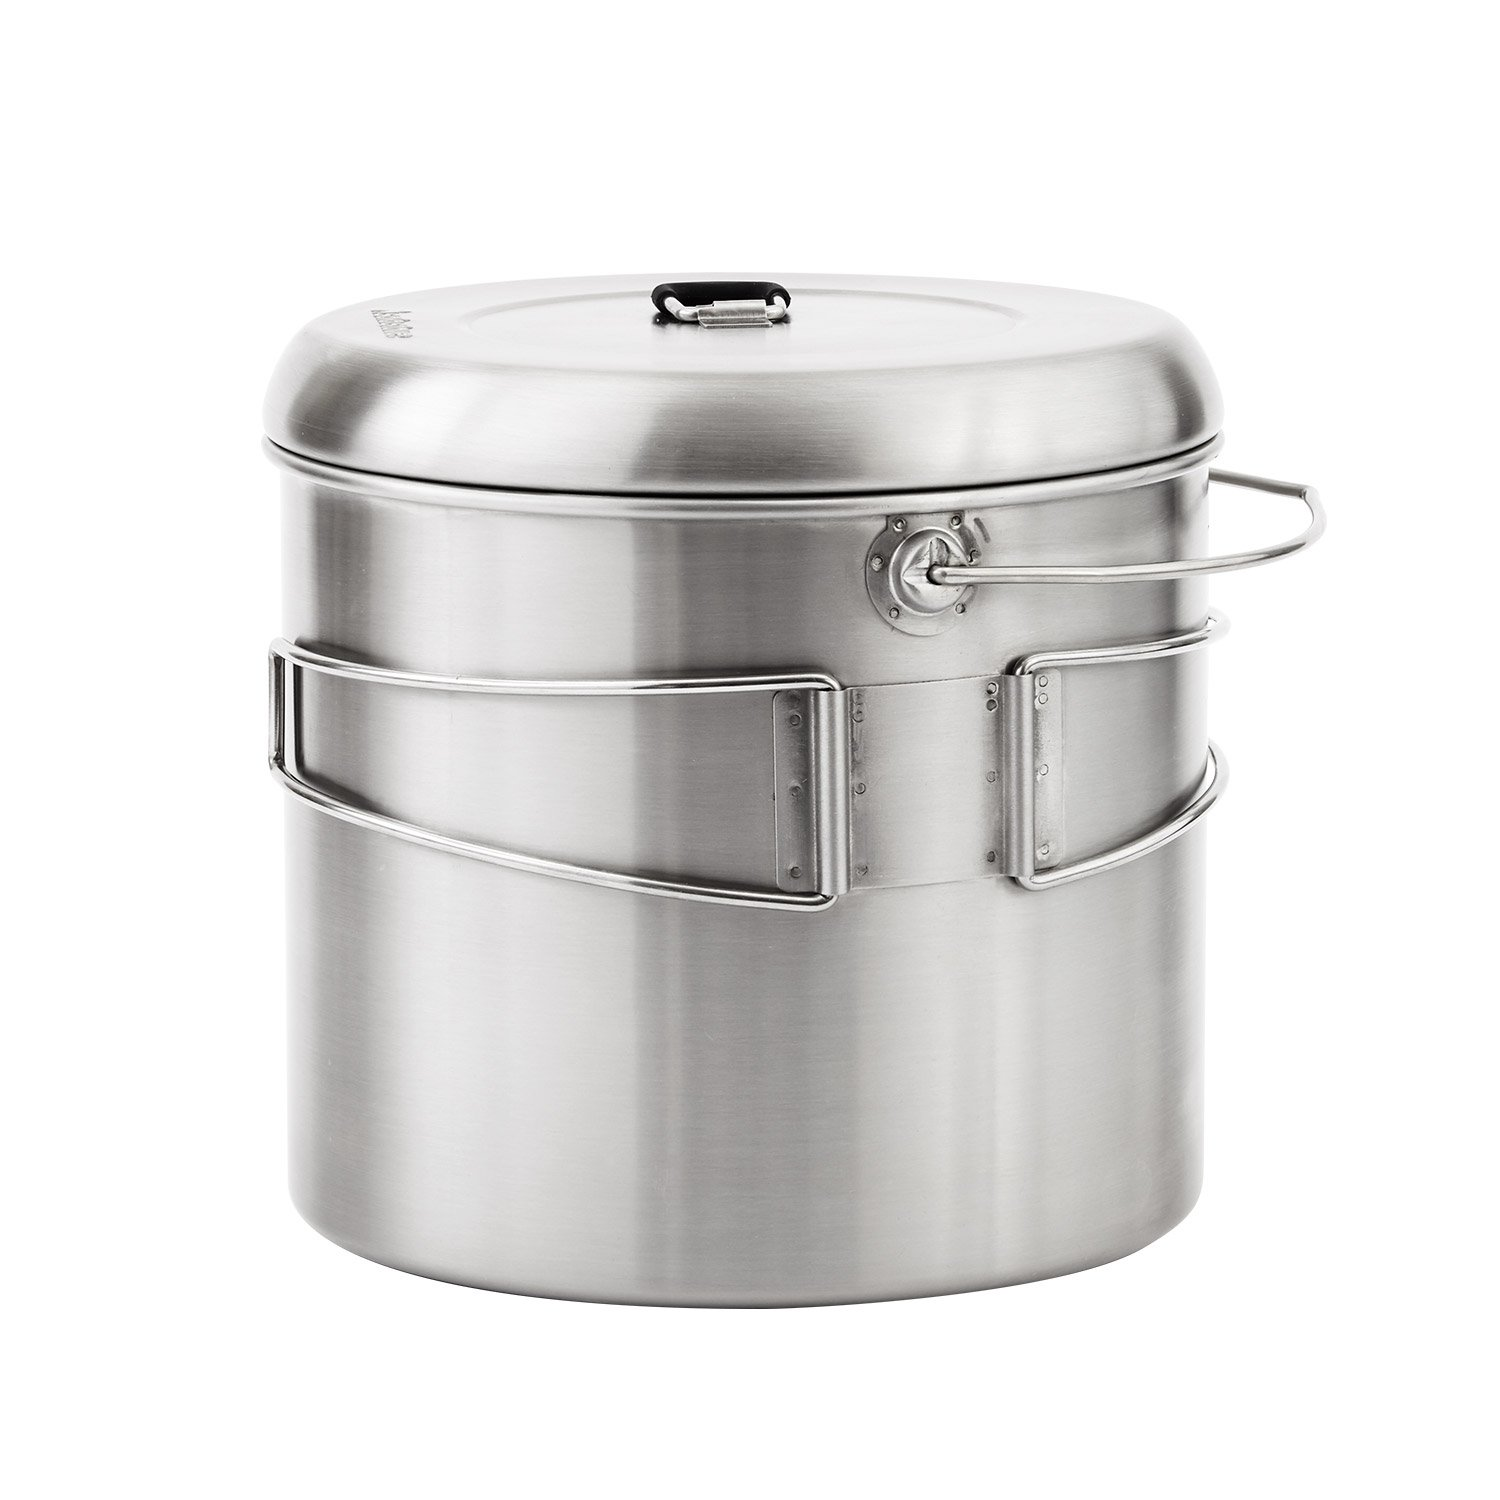 Solo Stove Pot 4000: Stainless Steel Companion Pot Campfire. Great for Backpacking, Camping, Bushcraft, Survival by Solo Stove